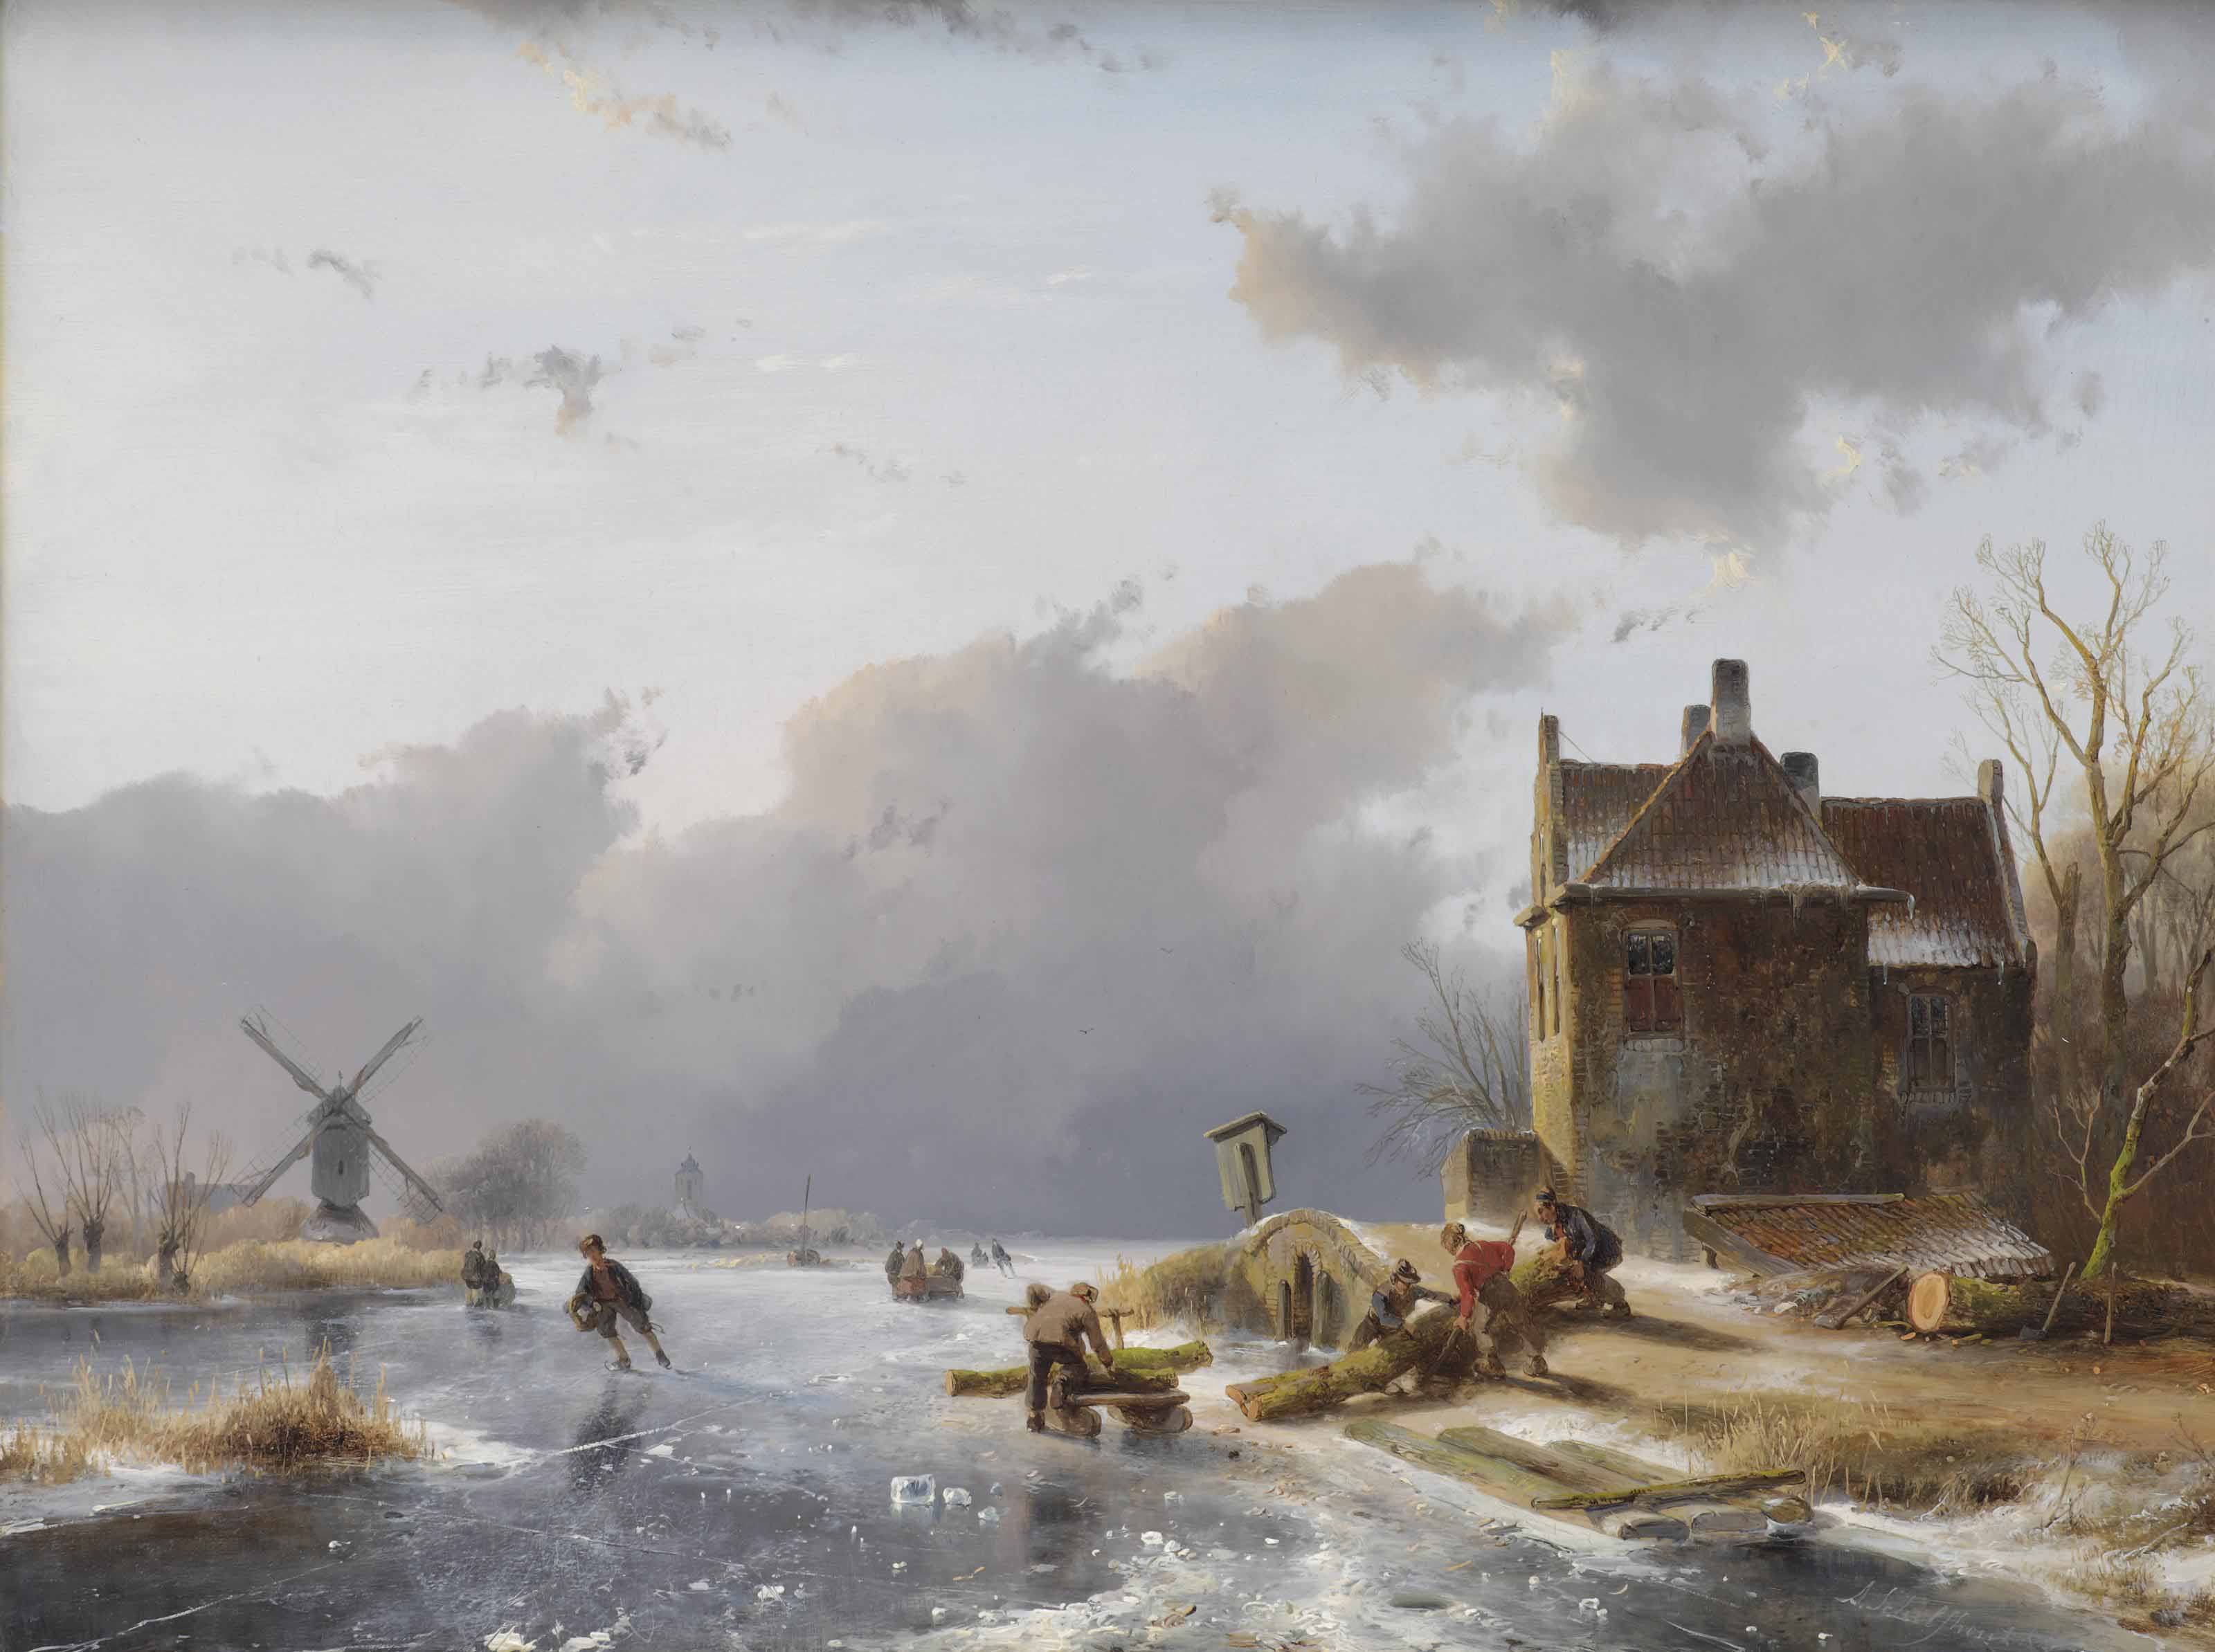 Andreas Schelfhout (The Hague